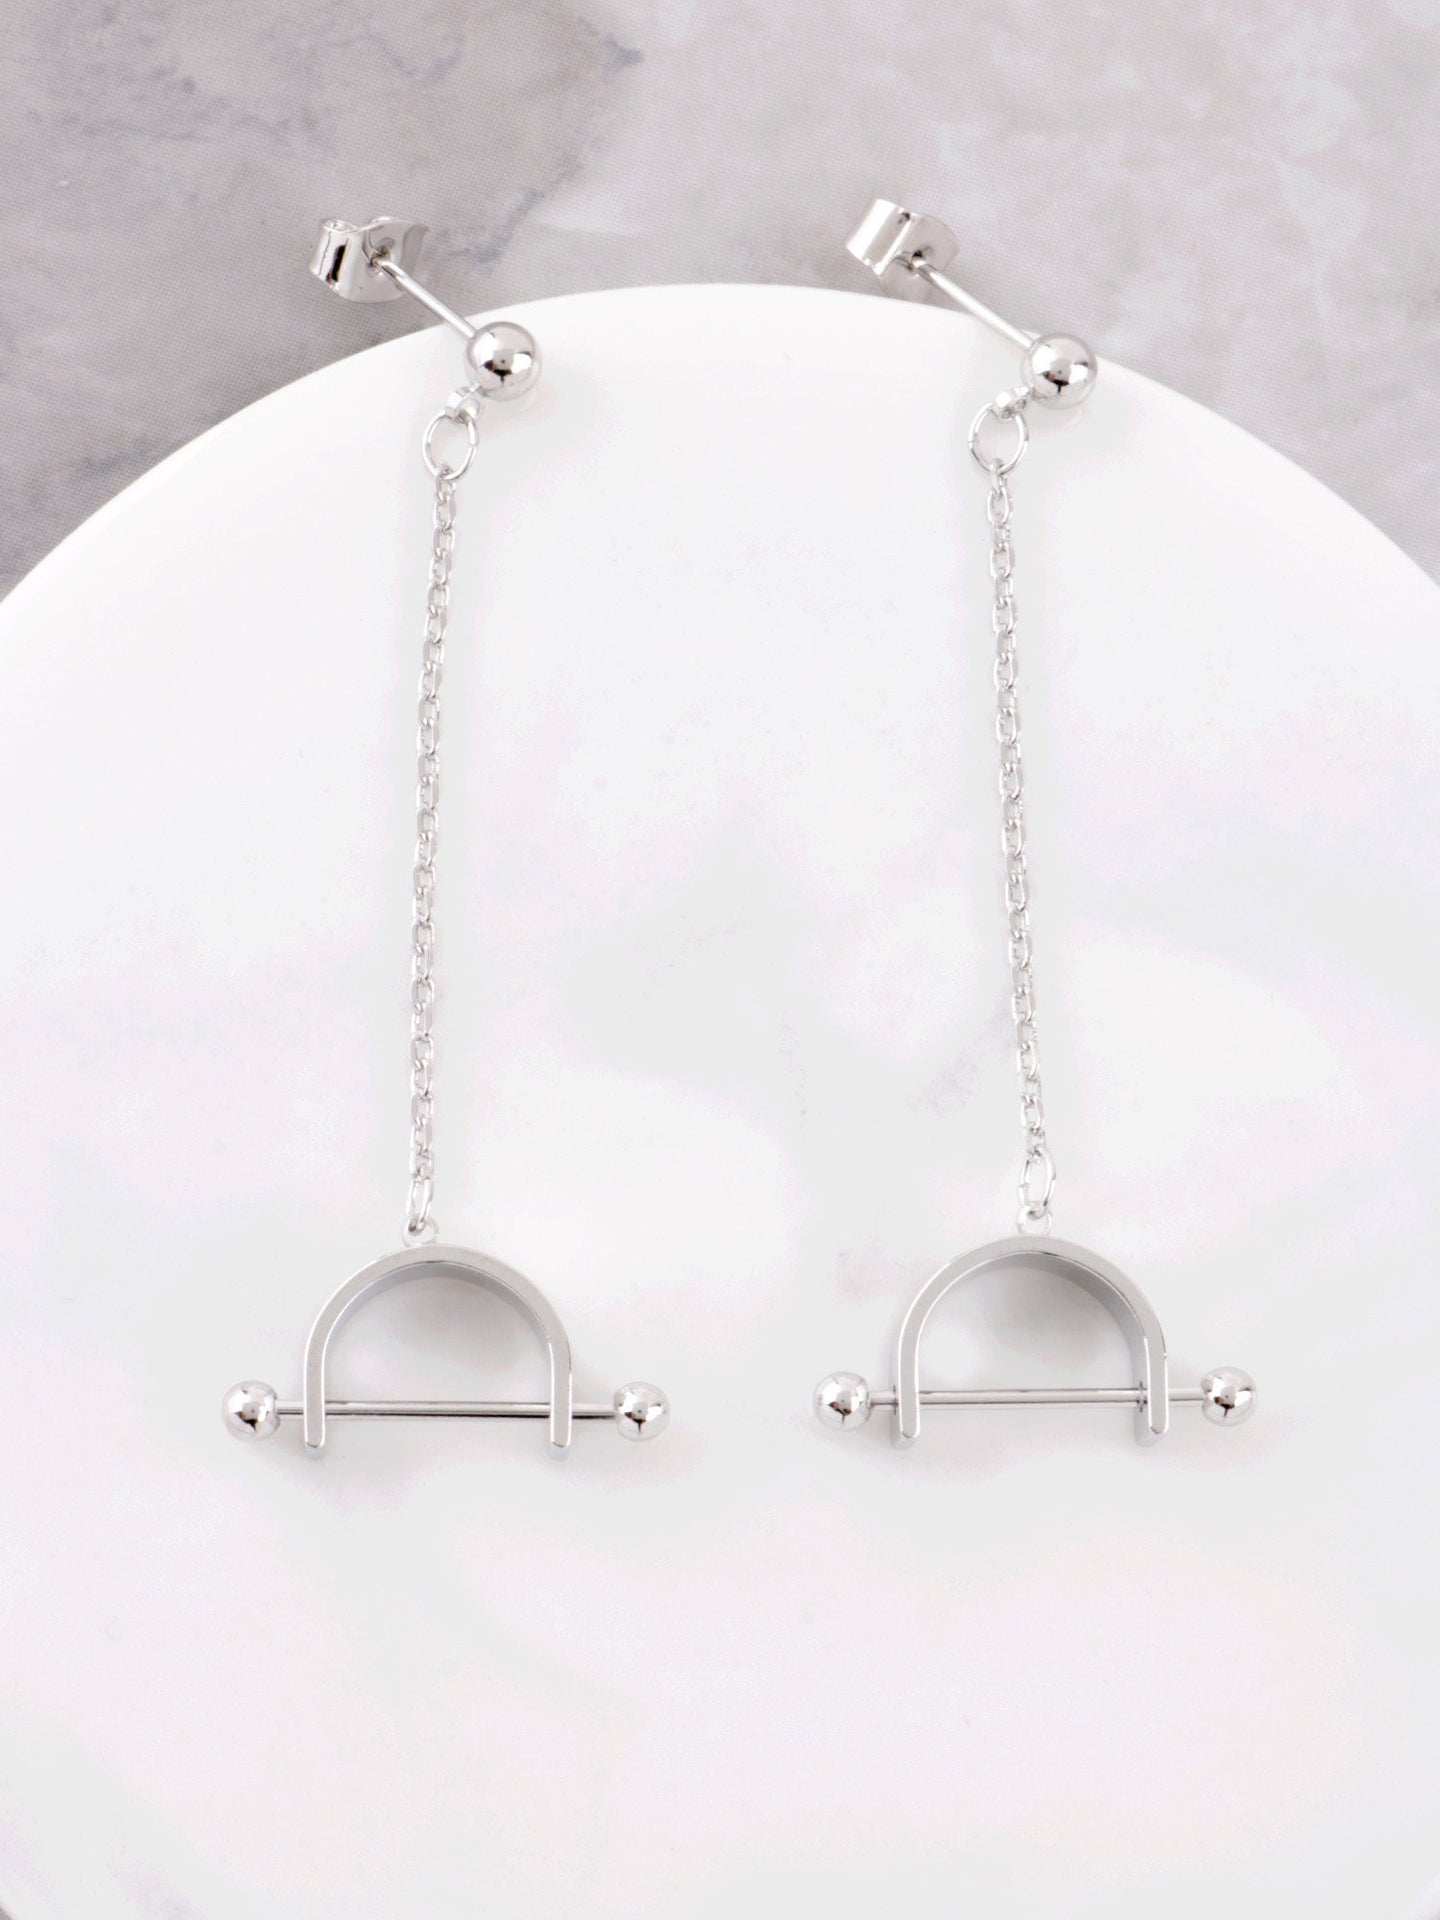 Barbell Chain Earrings Anarchy Street Silver